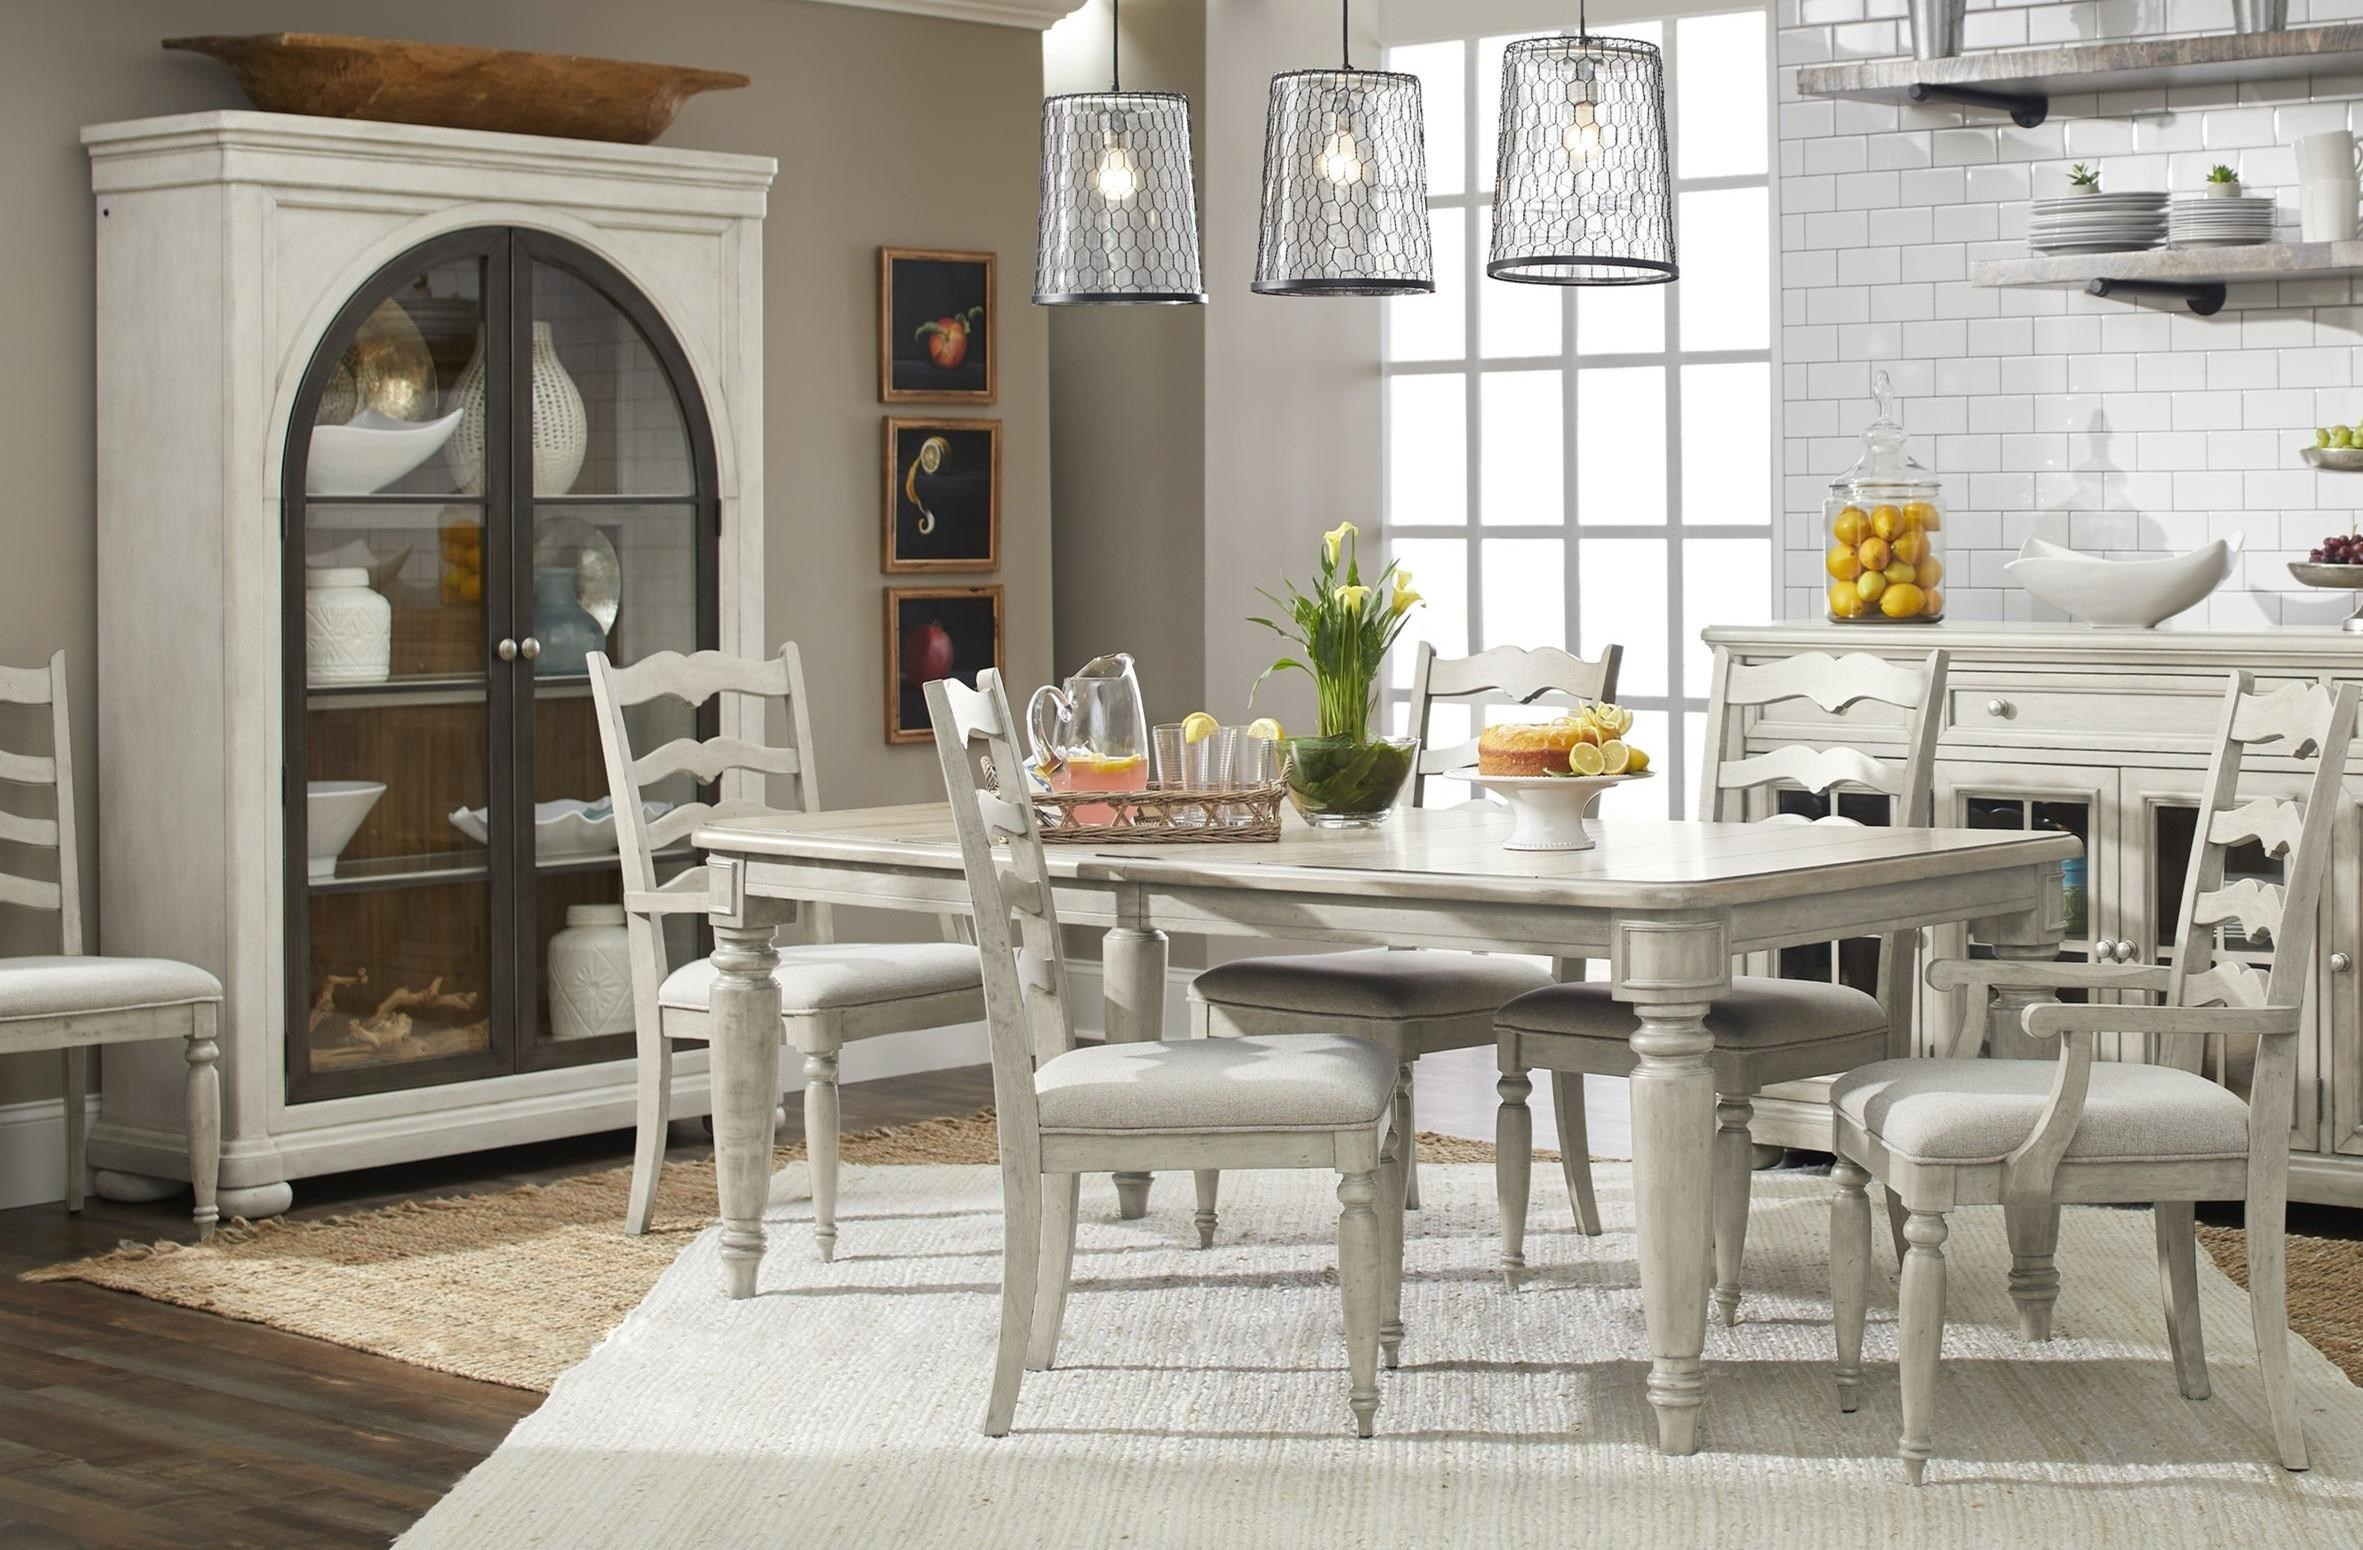 Trisha Yearwood Home Collection By Klaussner Nashville 7 Piece Dining Set With Mcguire Table And Ladderback Chairs Powell S Furniture And Mattress Dining 7 Or More Piece Sets